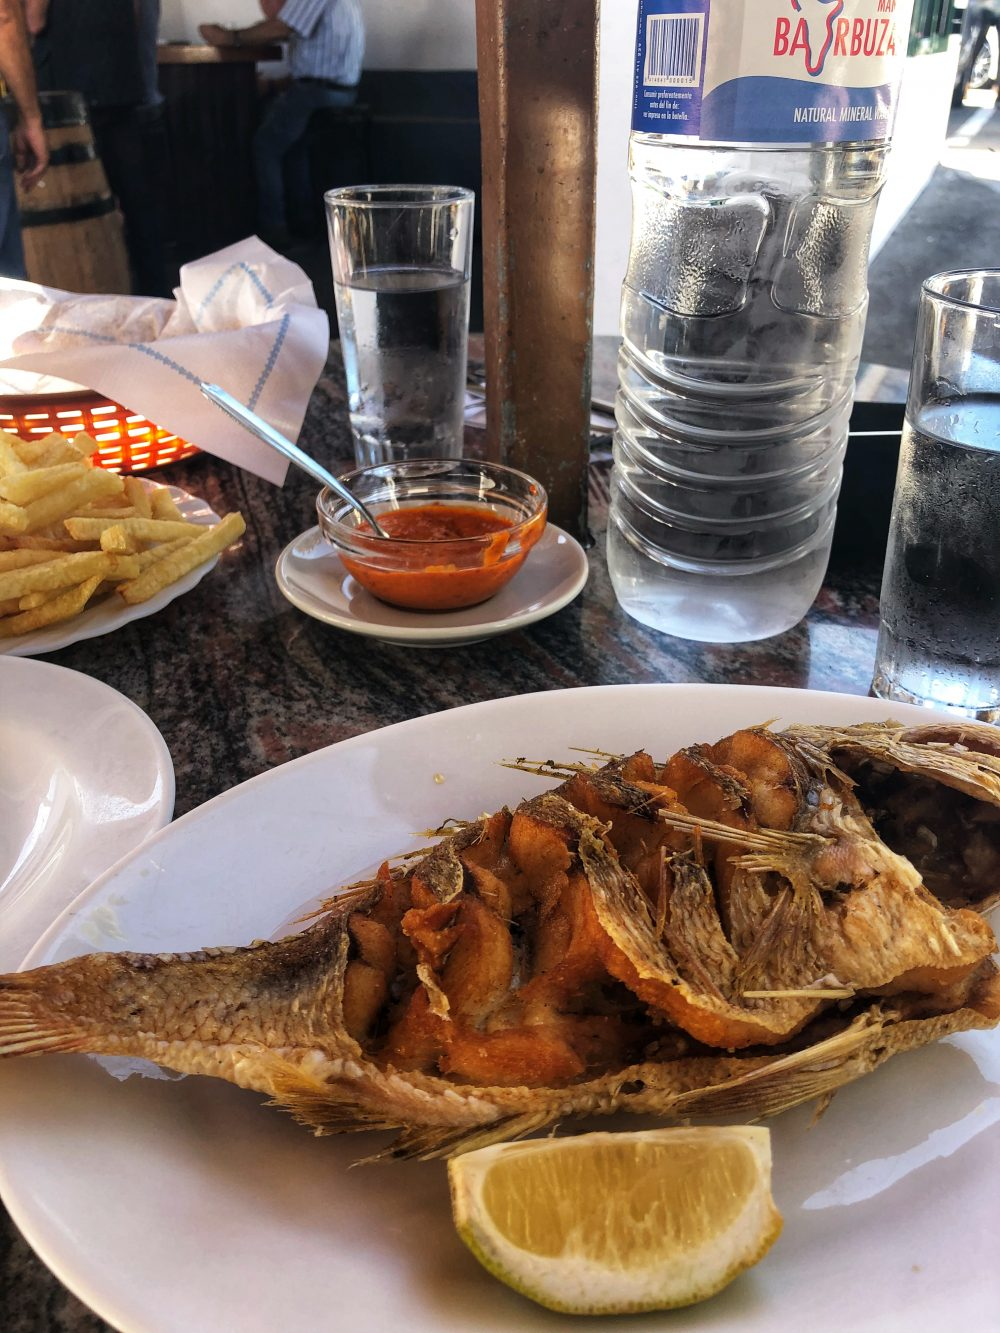 6 Cities That You Must Travel To Just For The Food: La Palma